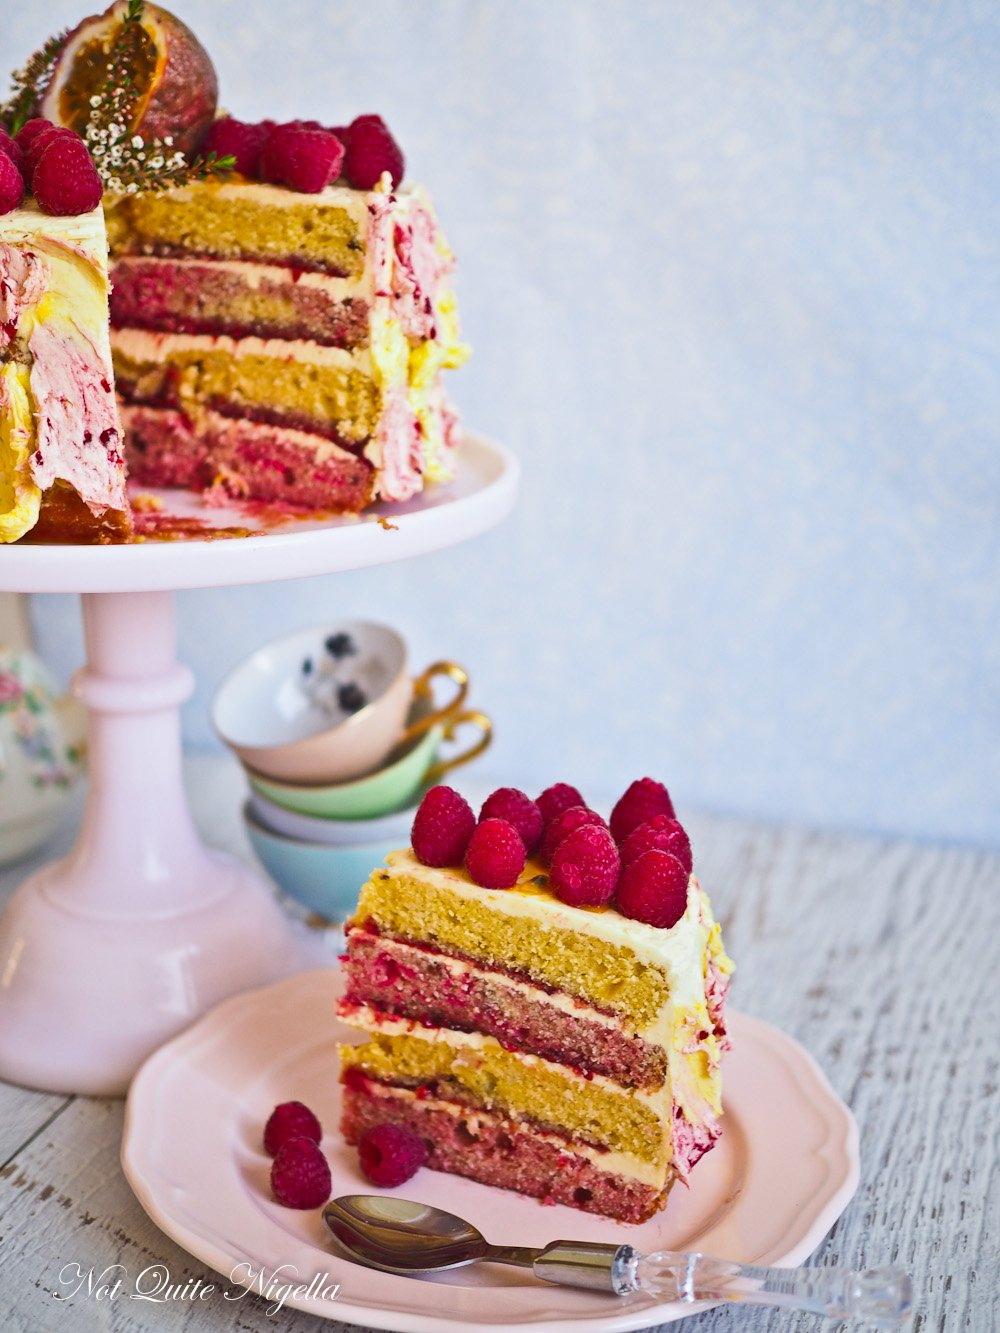 Cake With Fruit Layers : Passionfruit Raspberry Layer Cake @ Not Quite Nigella